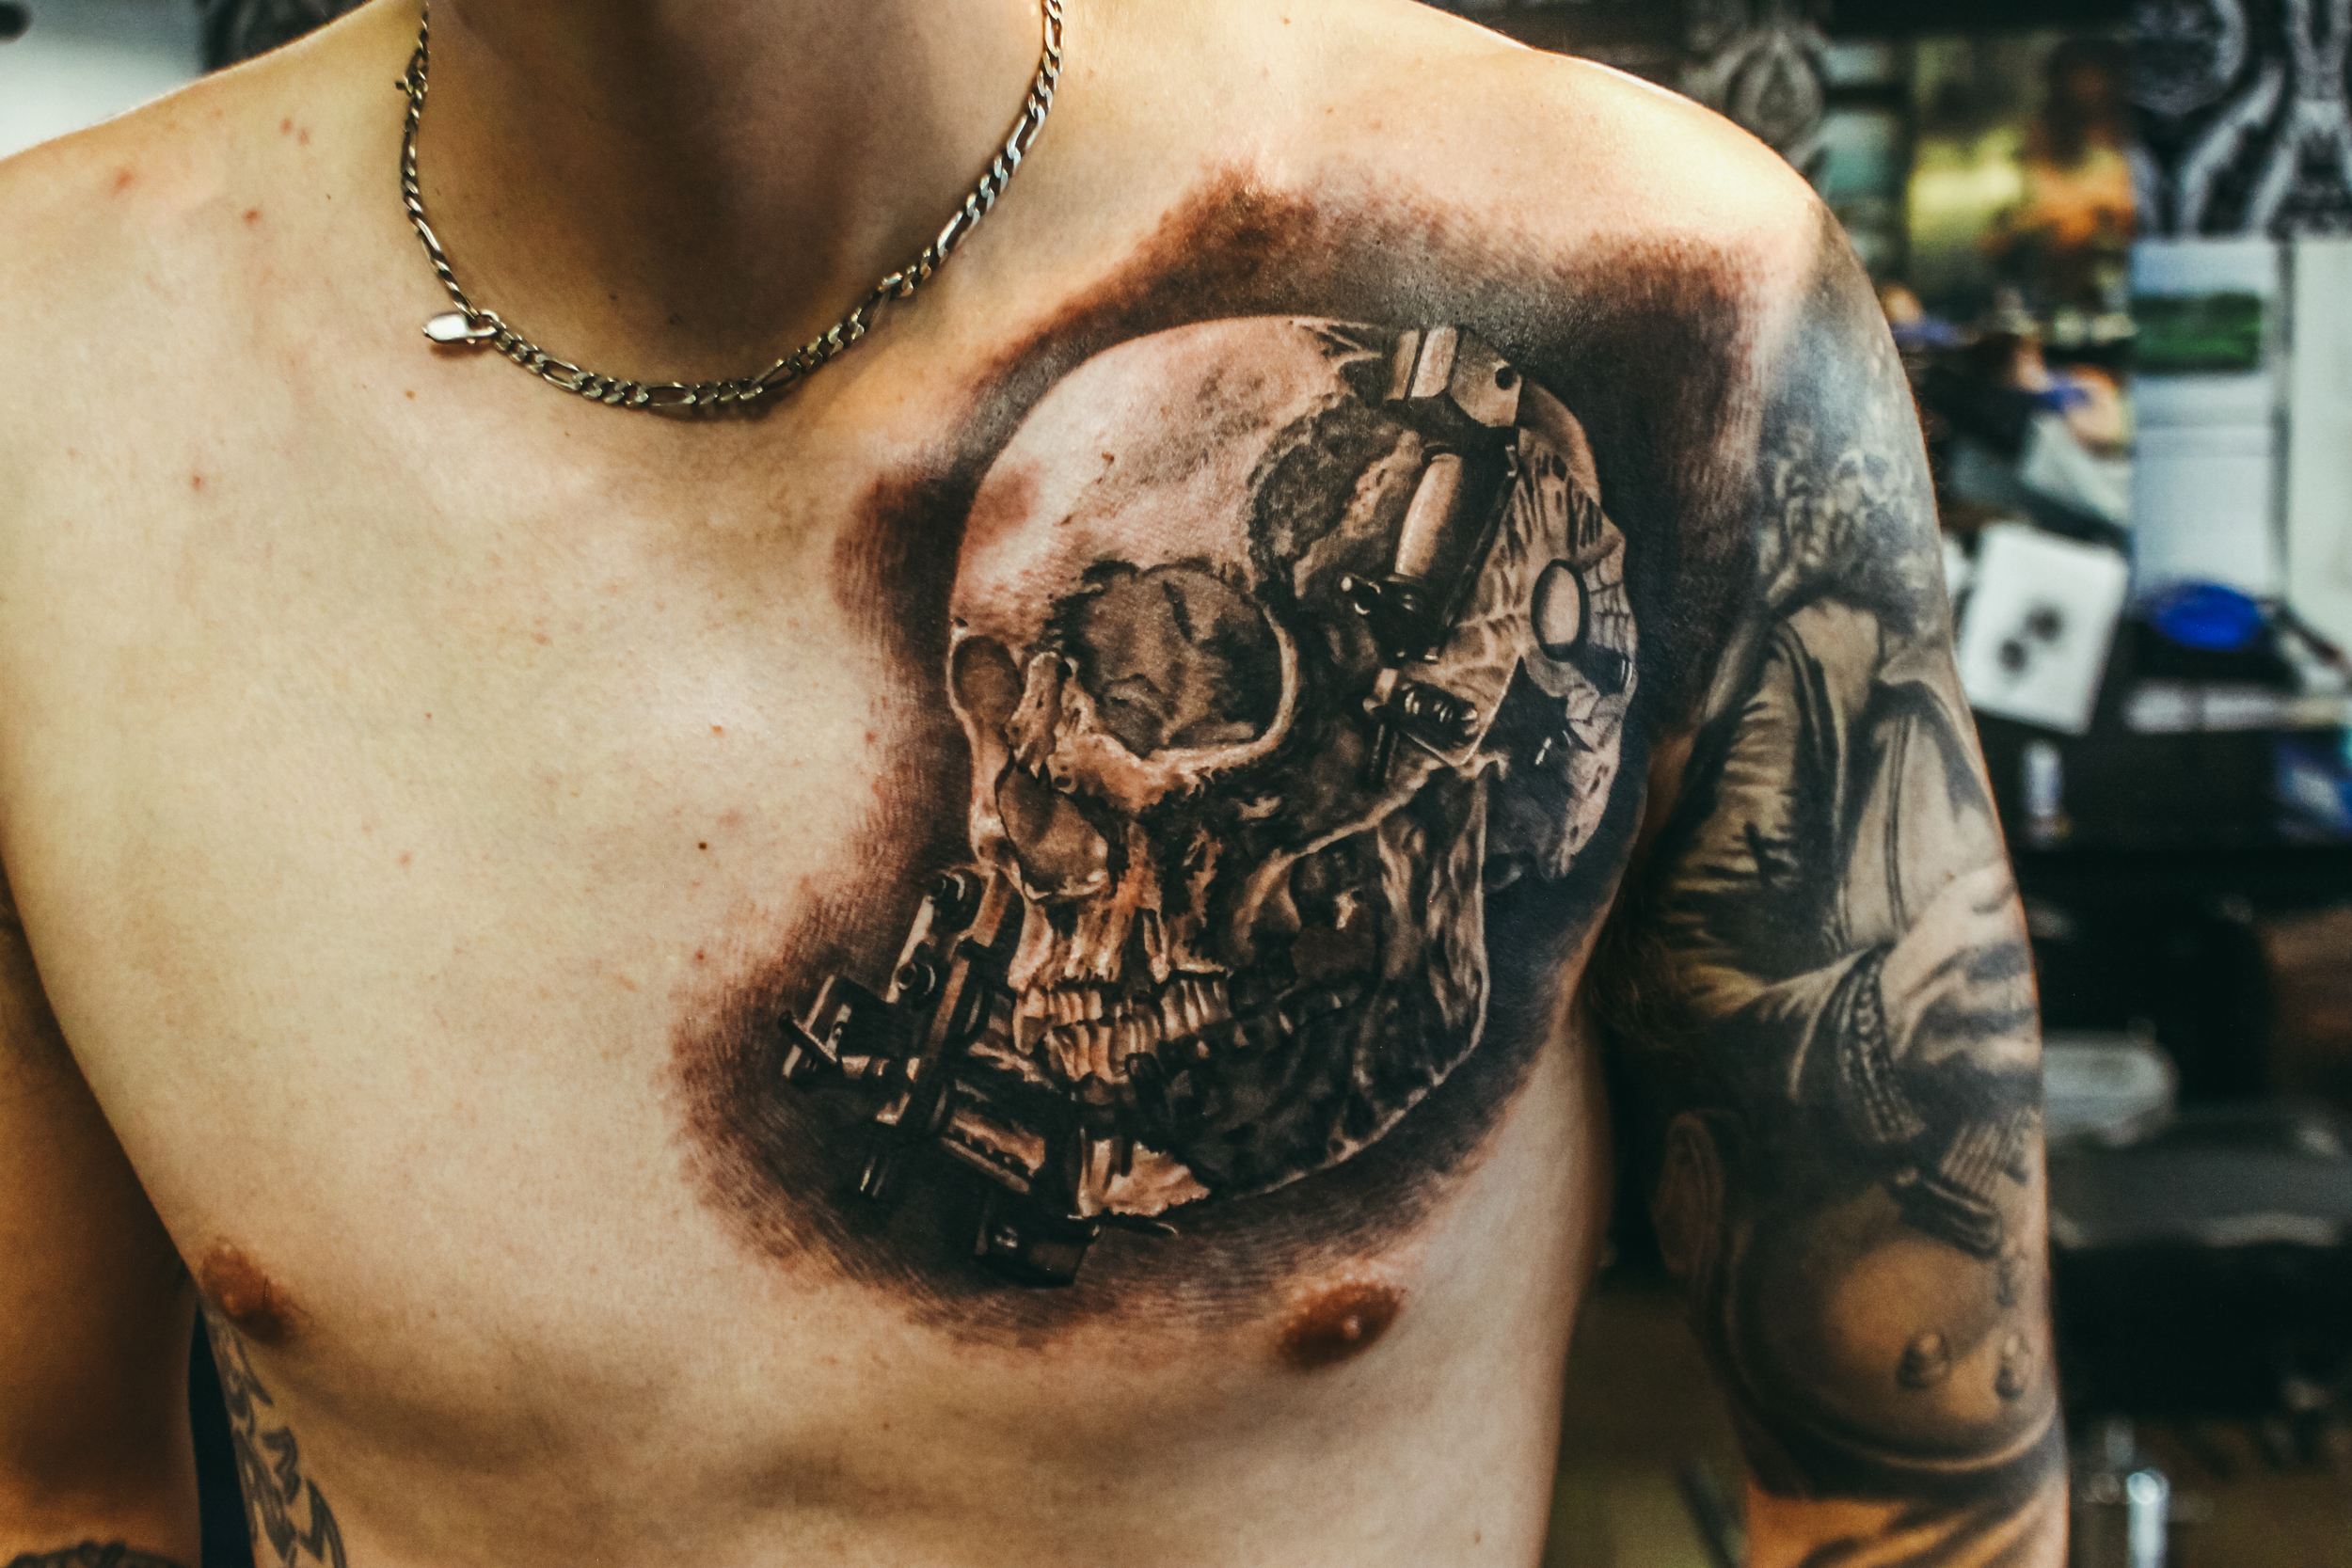 FYINK_tattoos-shoplife-june-27.jpg